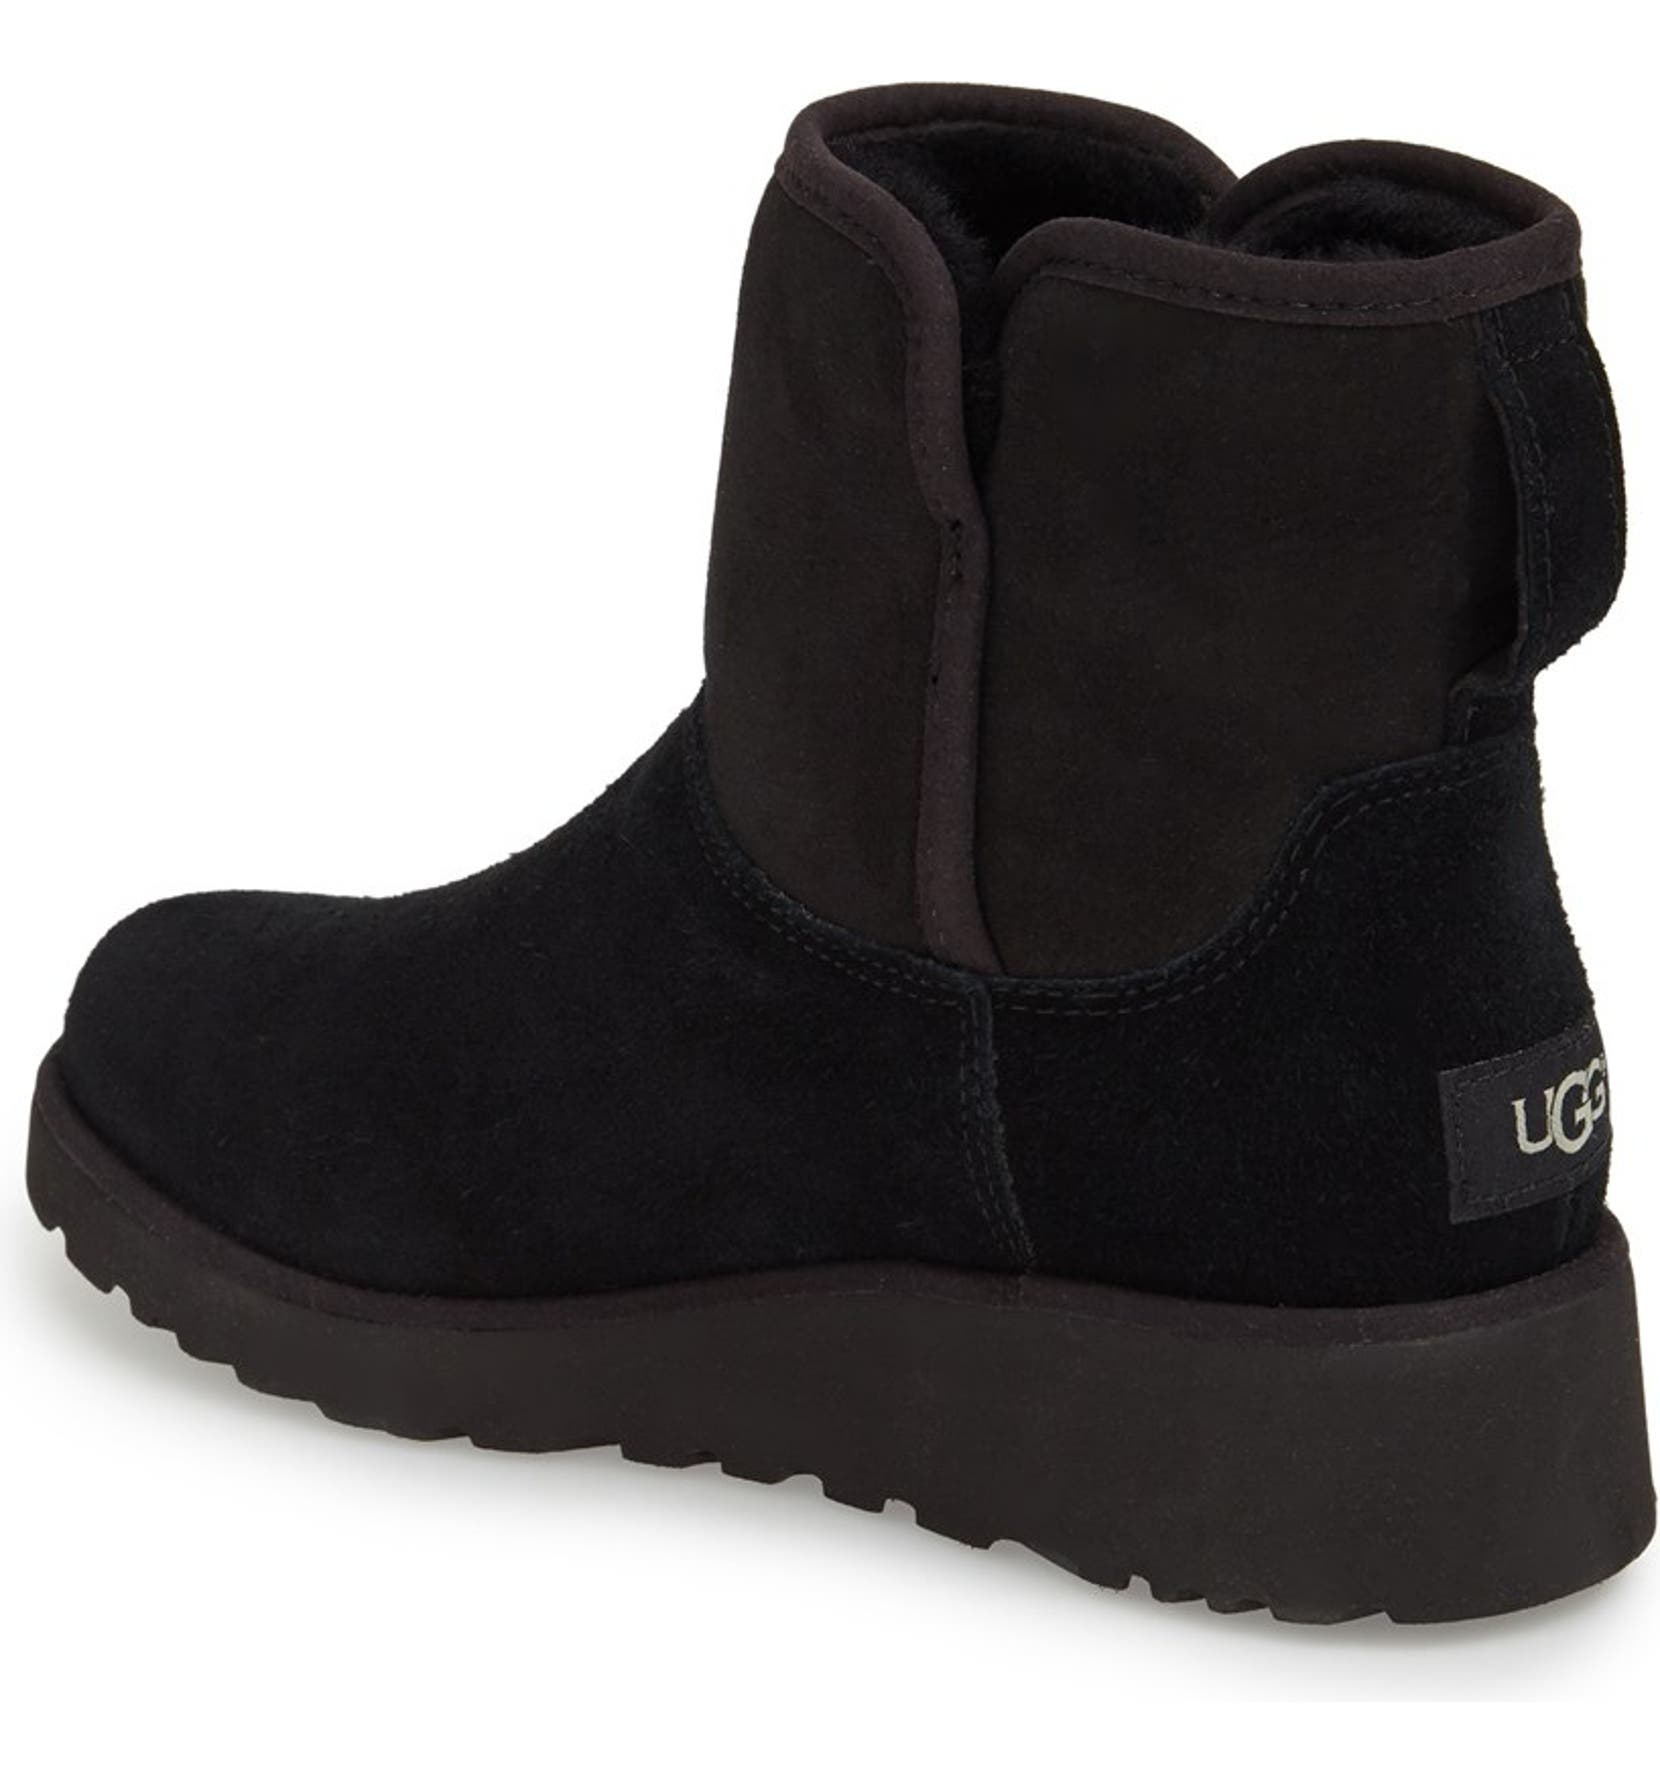 4a22c7c05d4 UGG® 'Katalina' Water Resistant Genuine Shearling Lined Boot (Little ...